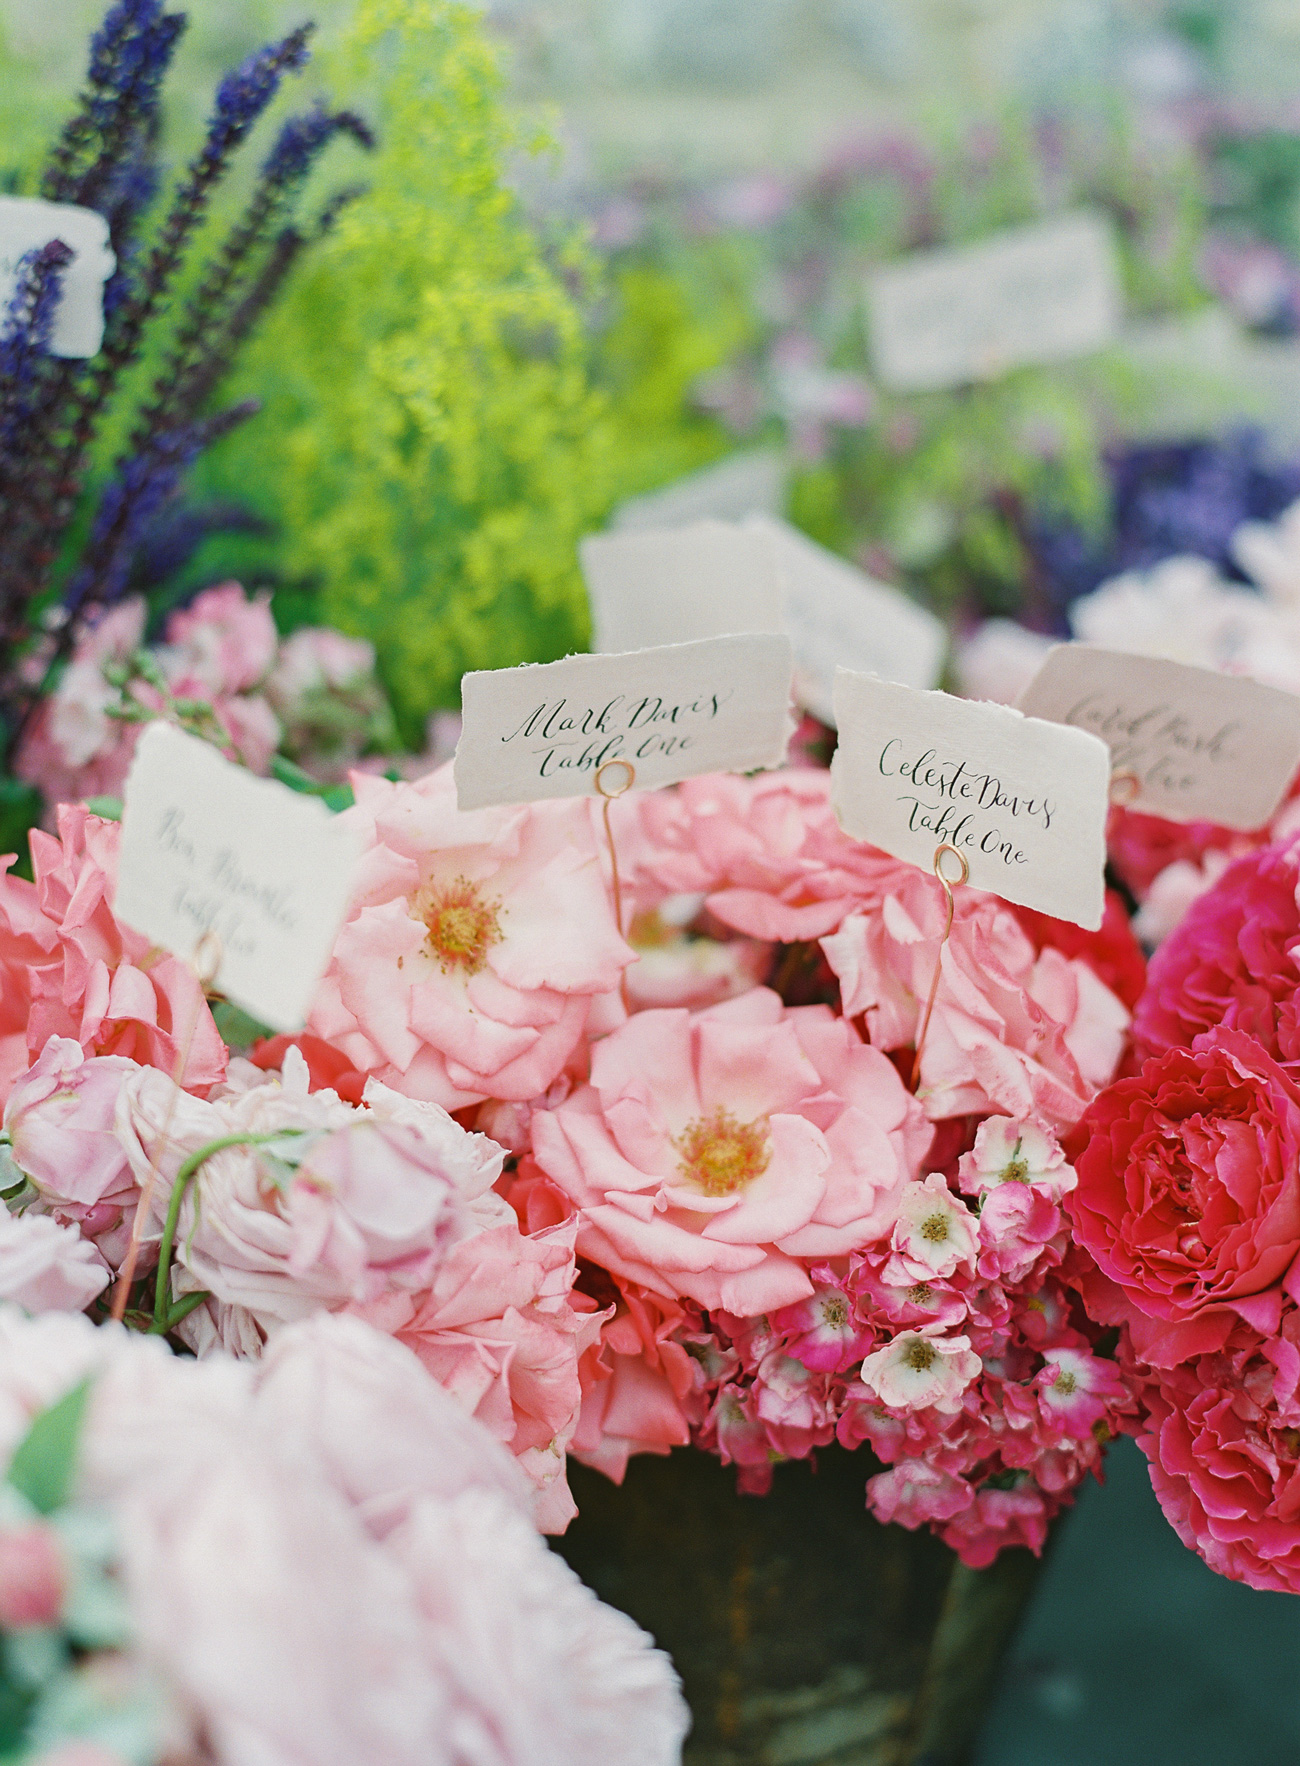 escort cards among floral arrangements